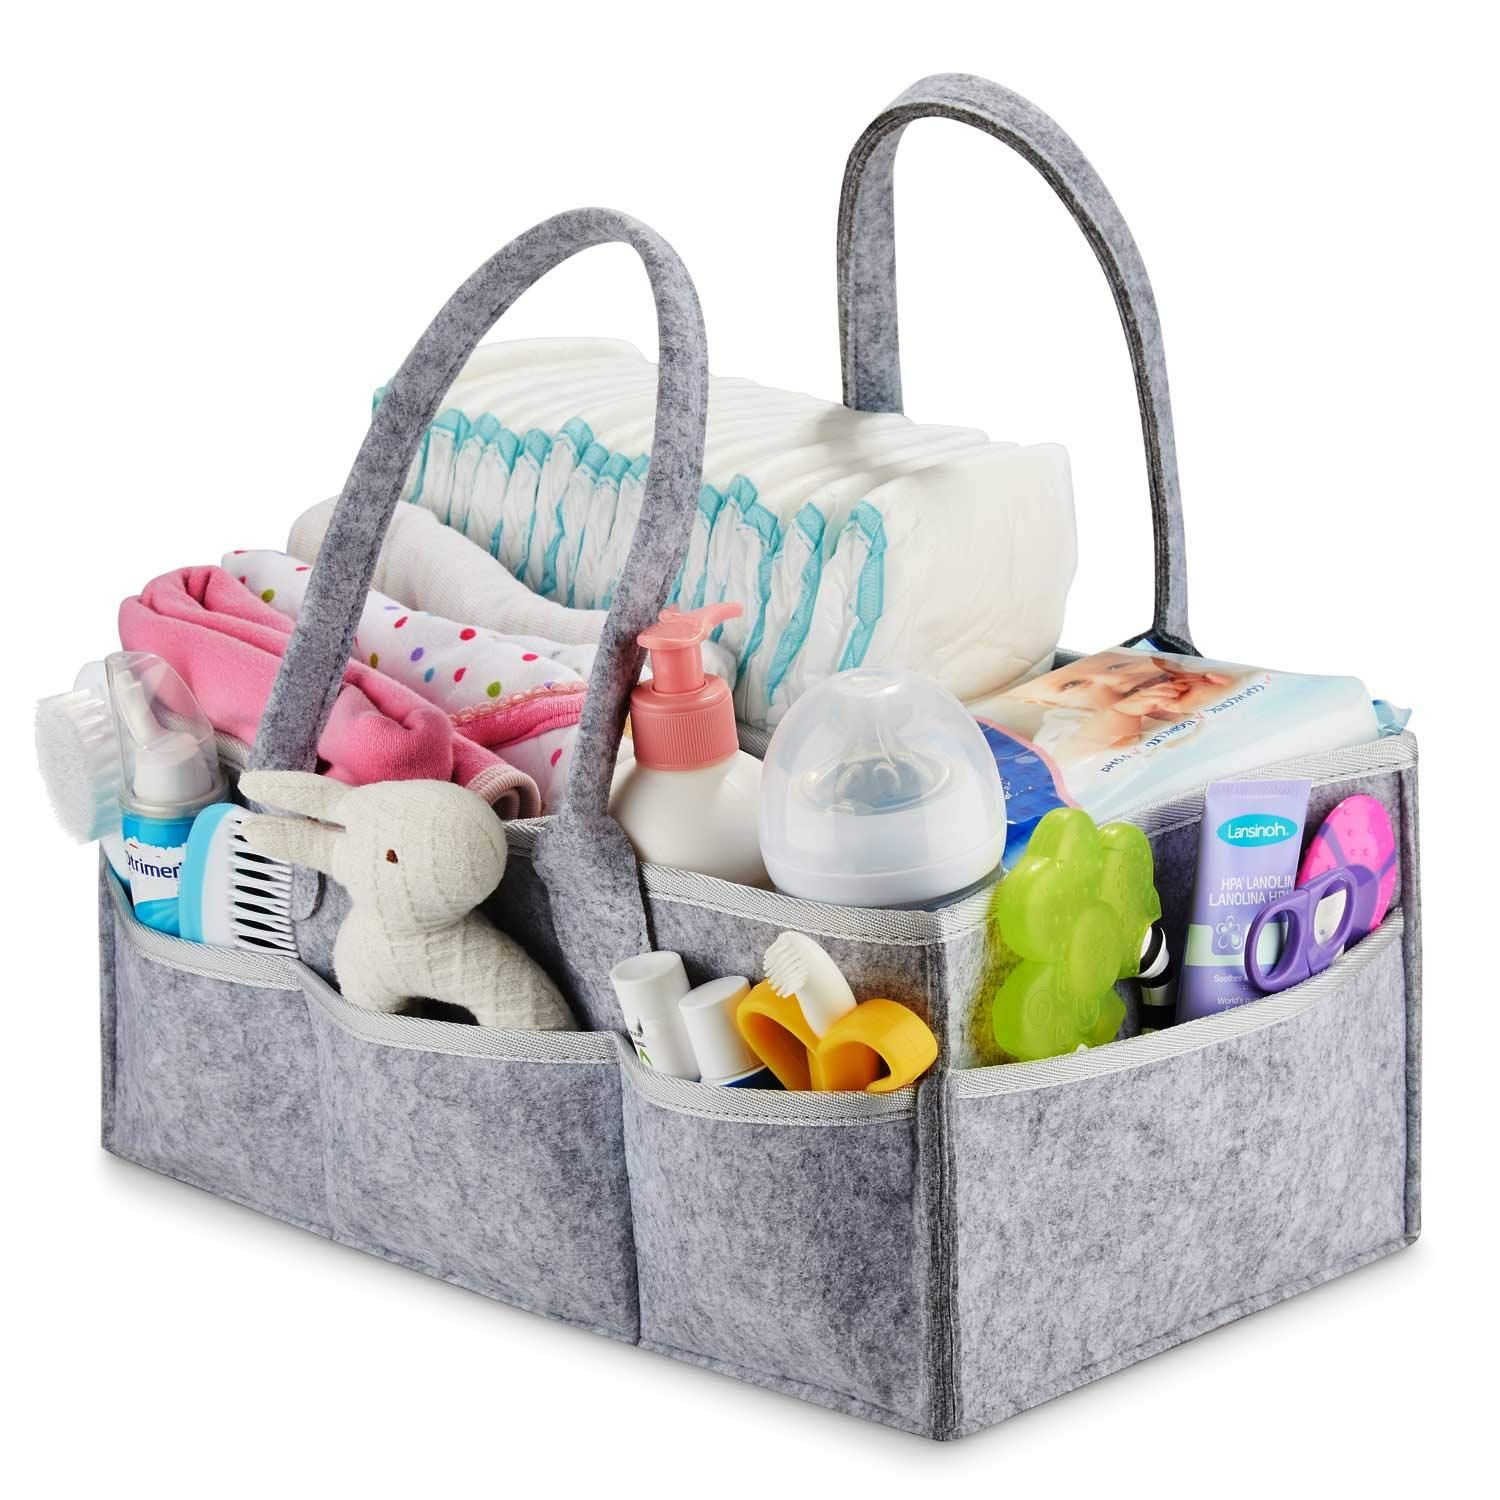 Neutral Baby Gift Basket Nursery Organizer Gift Registry for Baby Shower Changing Table Organizer Diaper Caddy Putska Baby Diaper Caddy Organizer